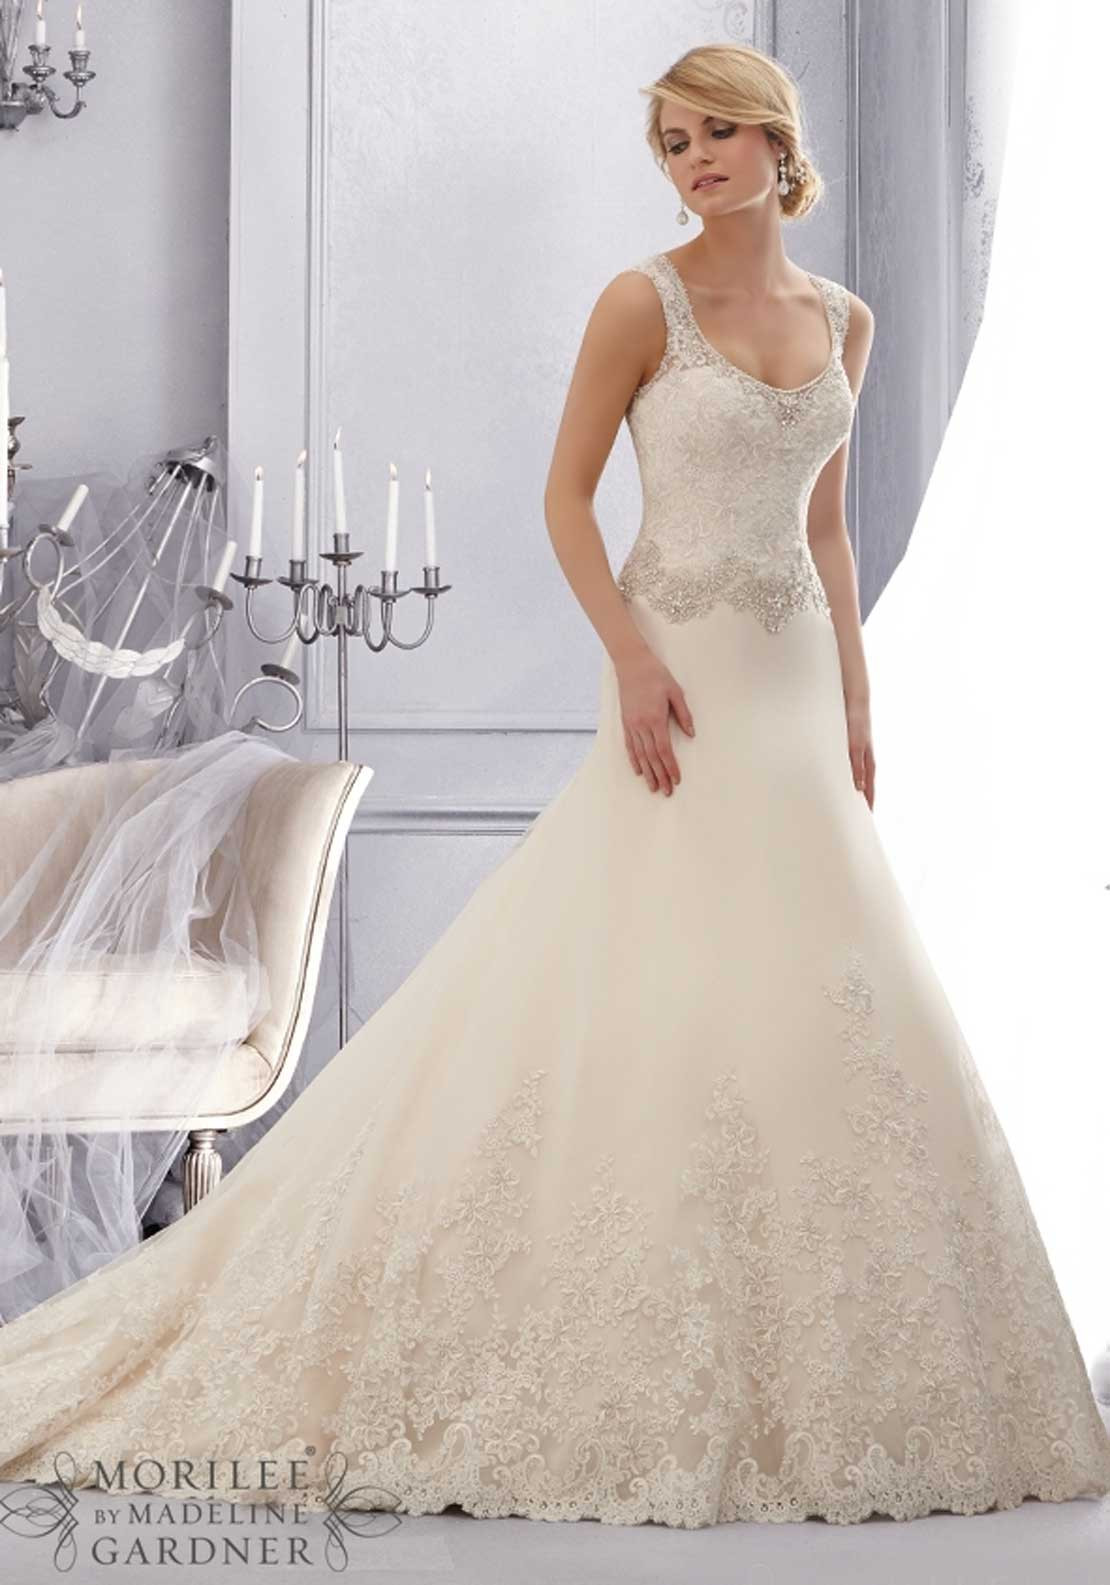 MORI LEE BRIDAL 14 IVO